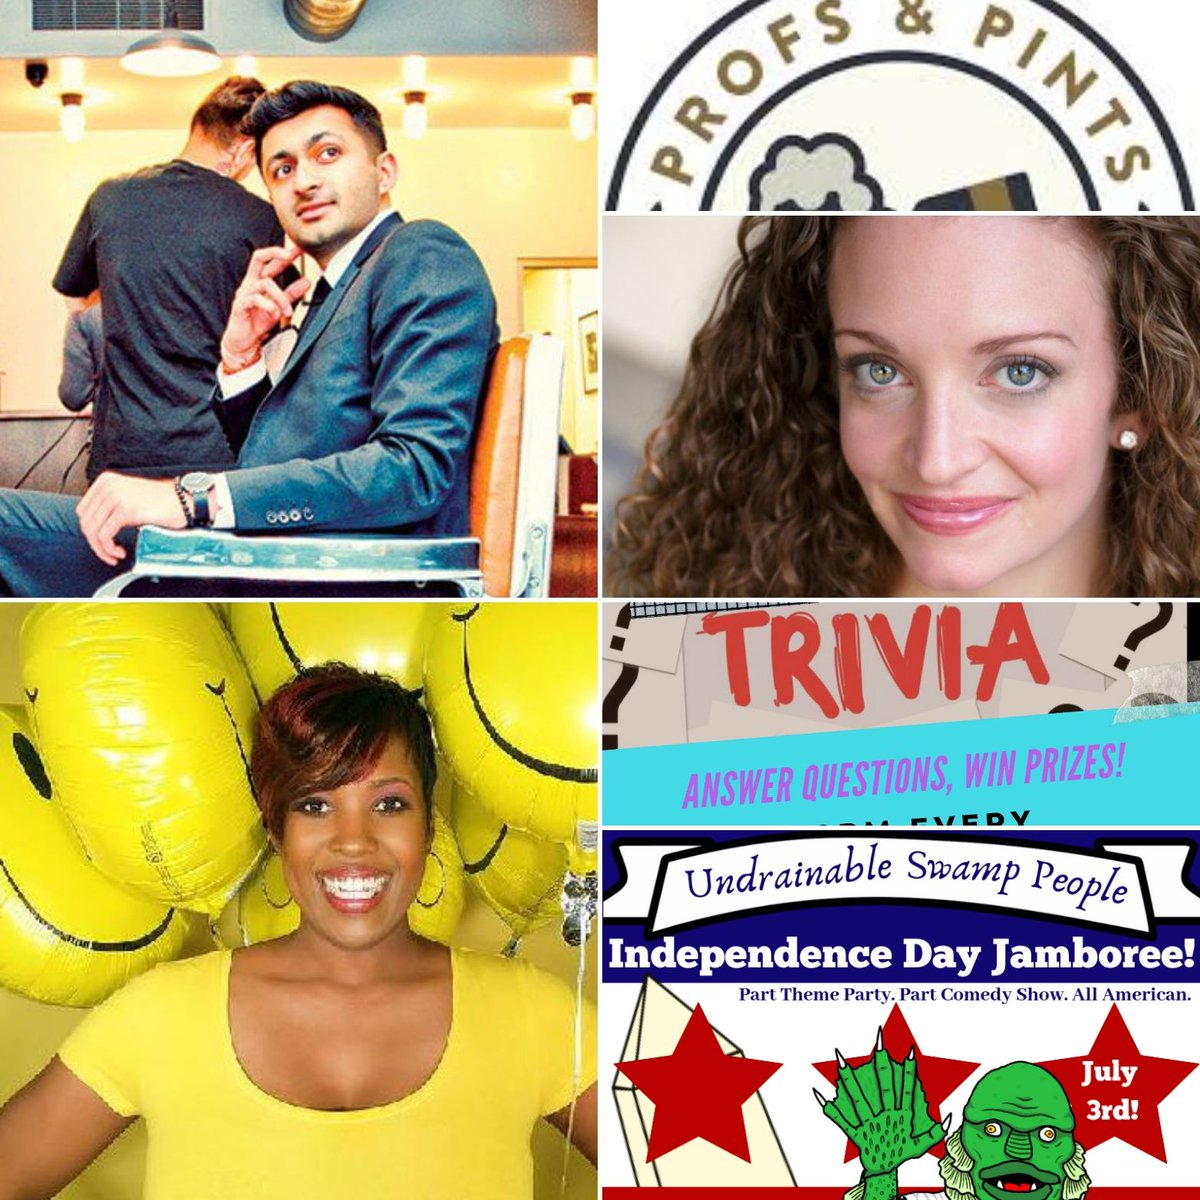 Looking ahead to next week. Comedy, lectures, and trivia, oh my!Monday- @profsandpints           Comedy ShuffleWednesday- @KatRadley          July 4th Comedy           Trivia NightFriday/Saturday- Nimesh Patel             @miacomedyCalendar at http://dccomedyloft.com